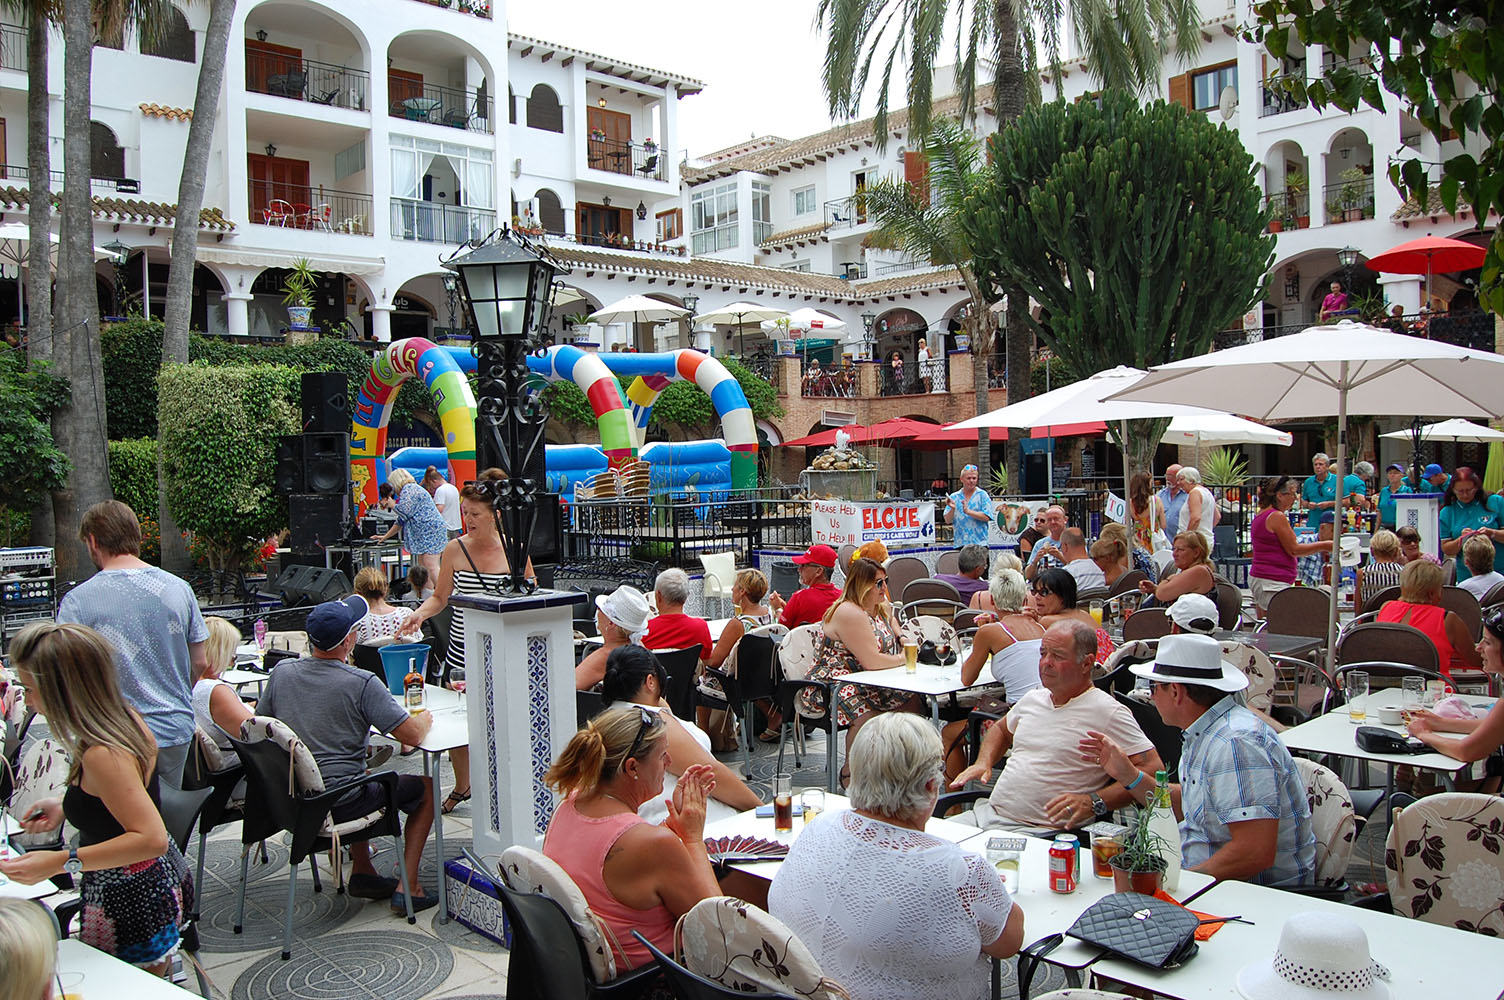 Charity Days in Villamartin Plaza